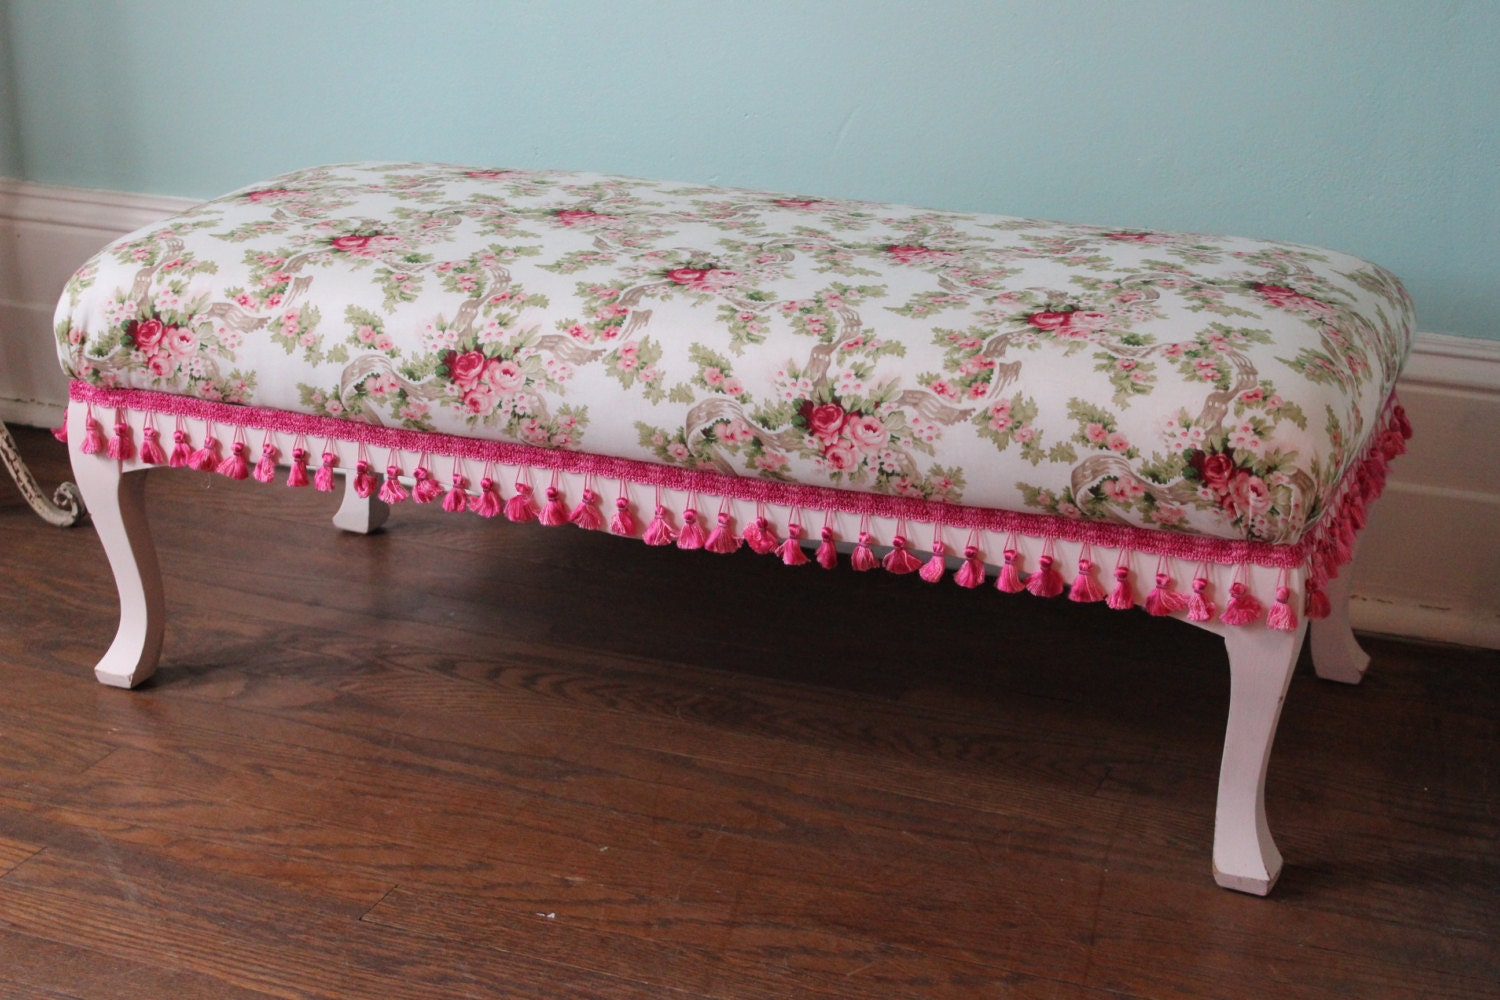 Shabby Chic Vintage Bench With Pink Rose Fabric And Hot Pink